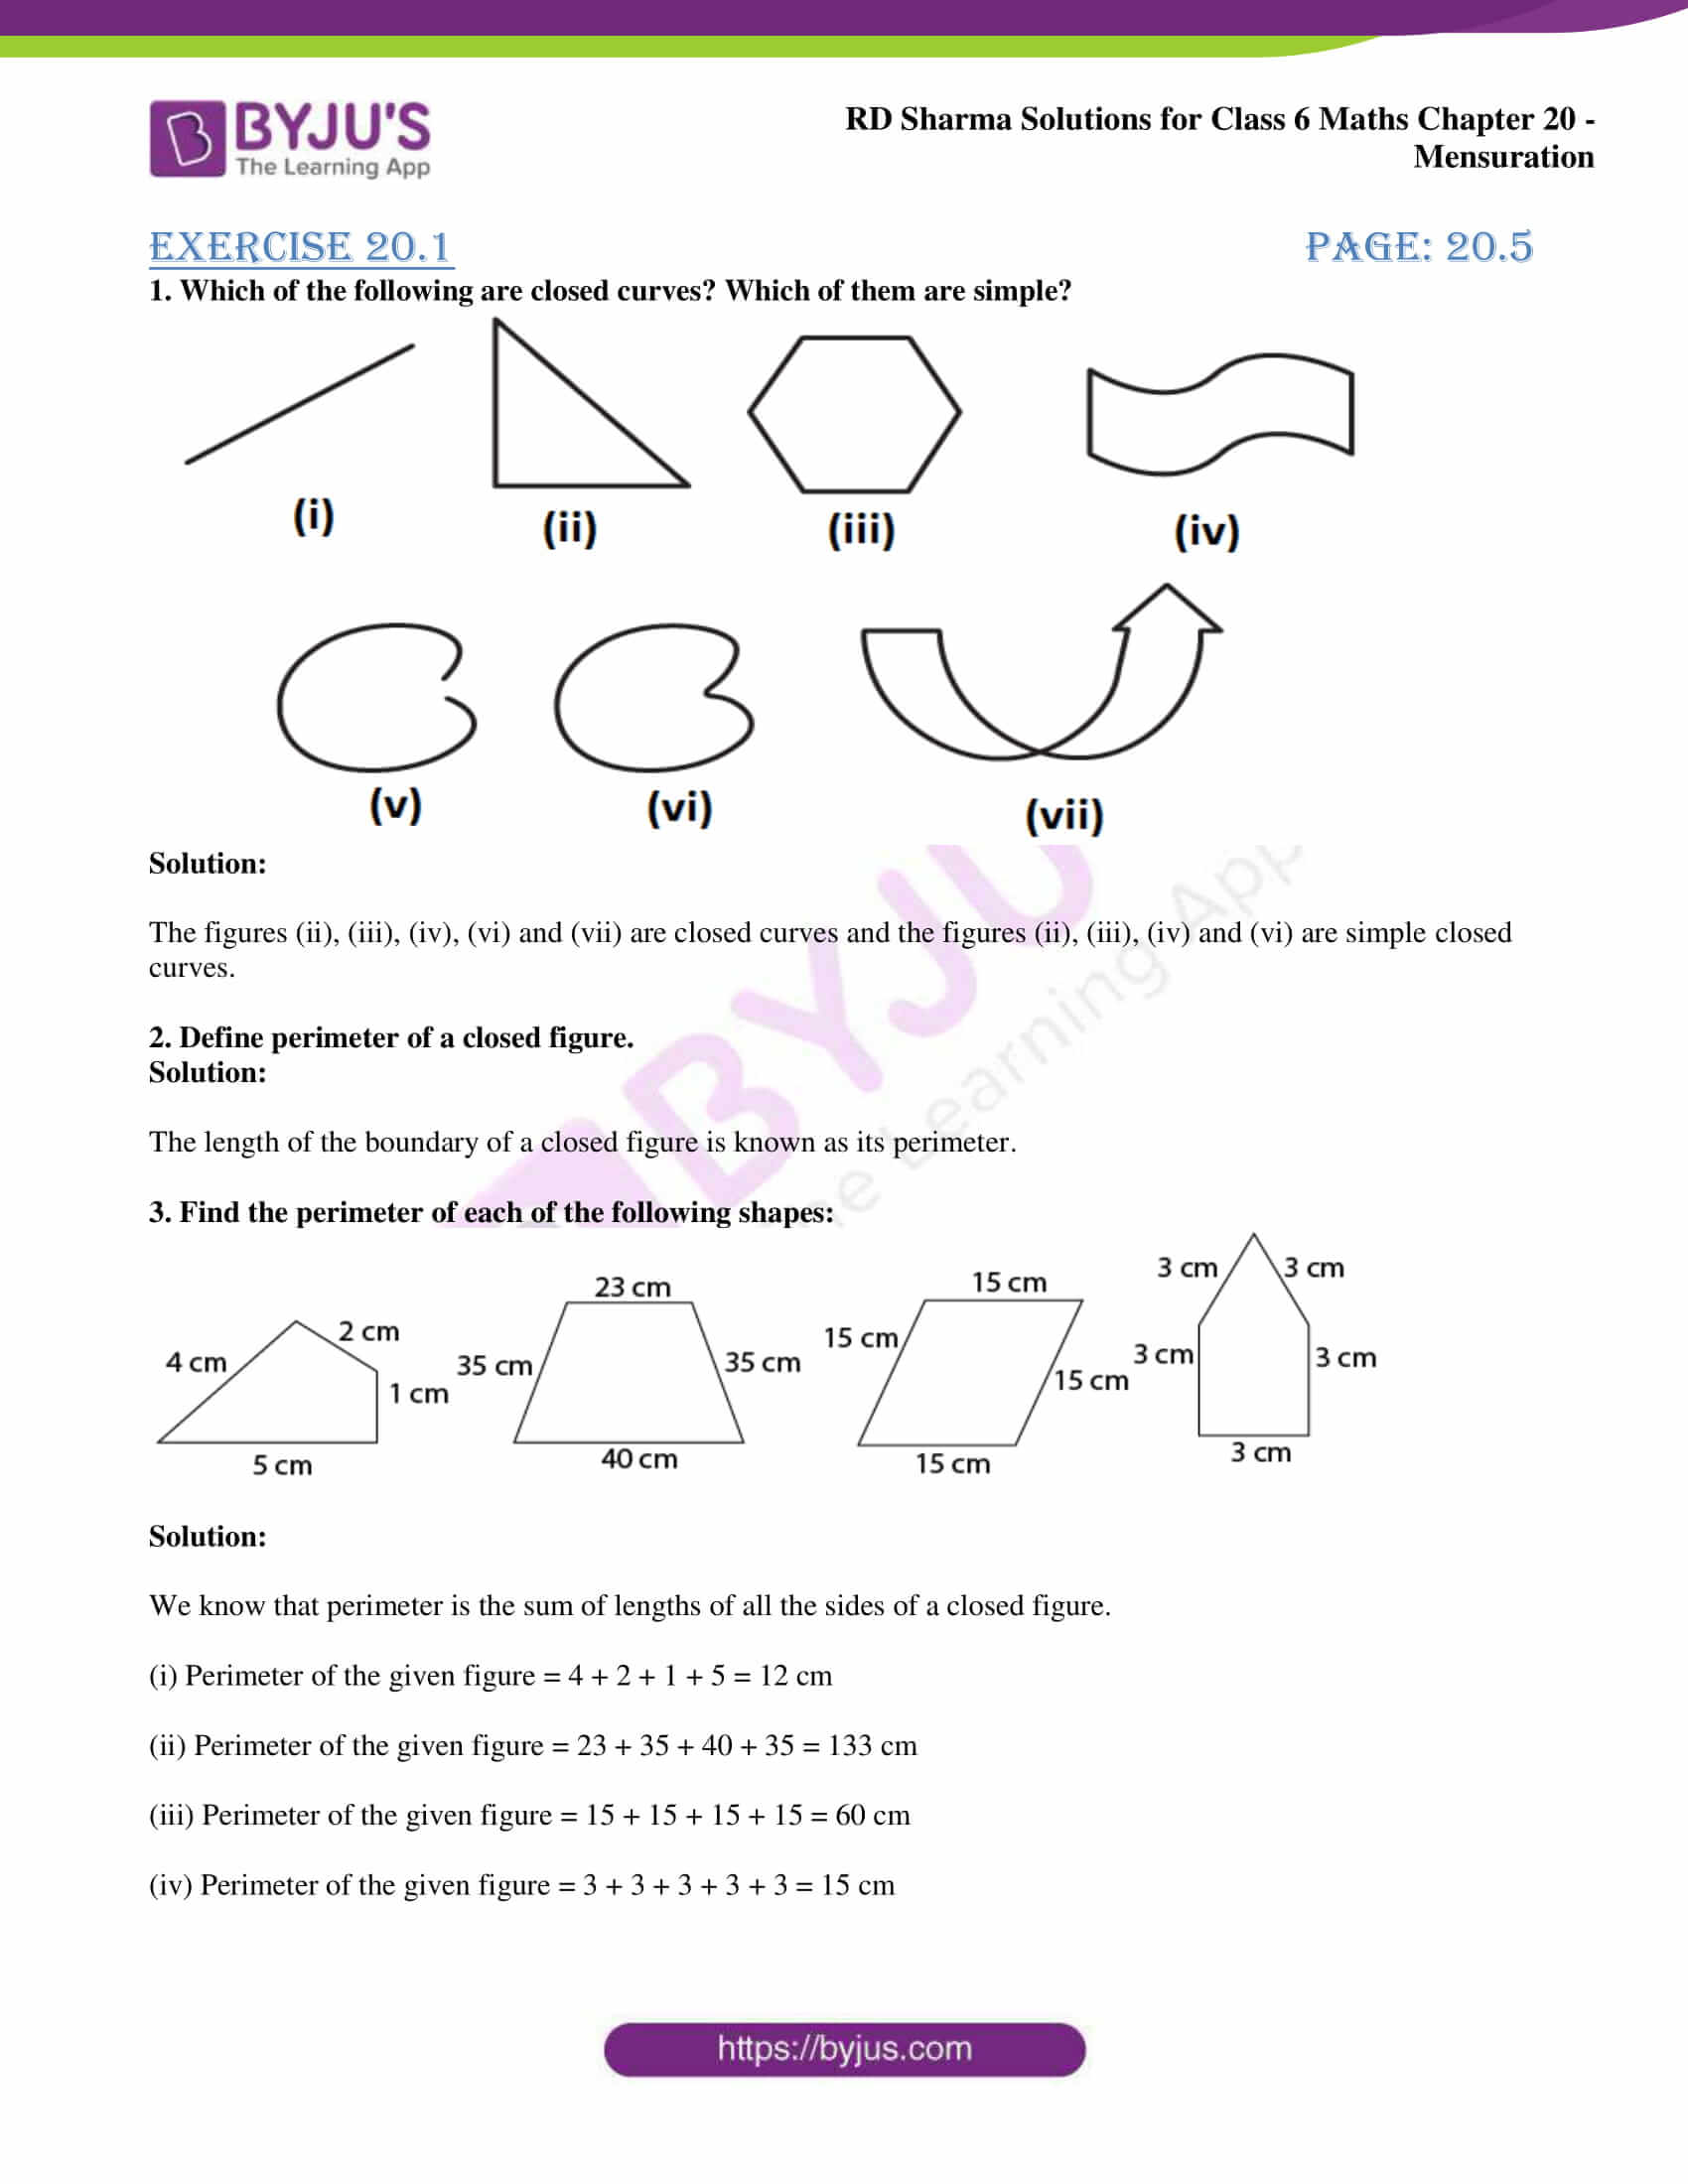 rd sharma solutions nov2020 class 6 maths chapter 20 exercise 1 1